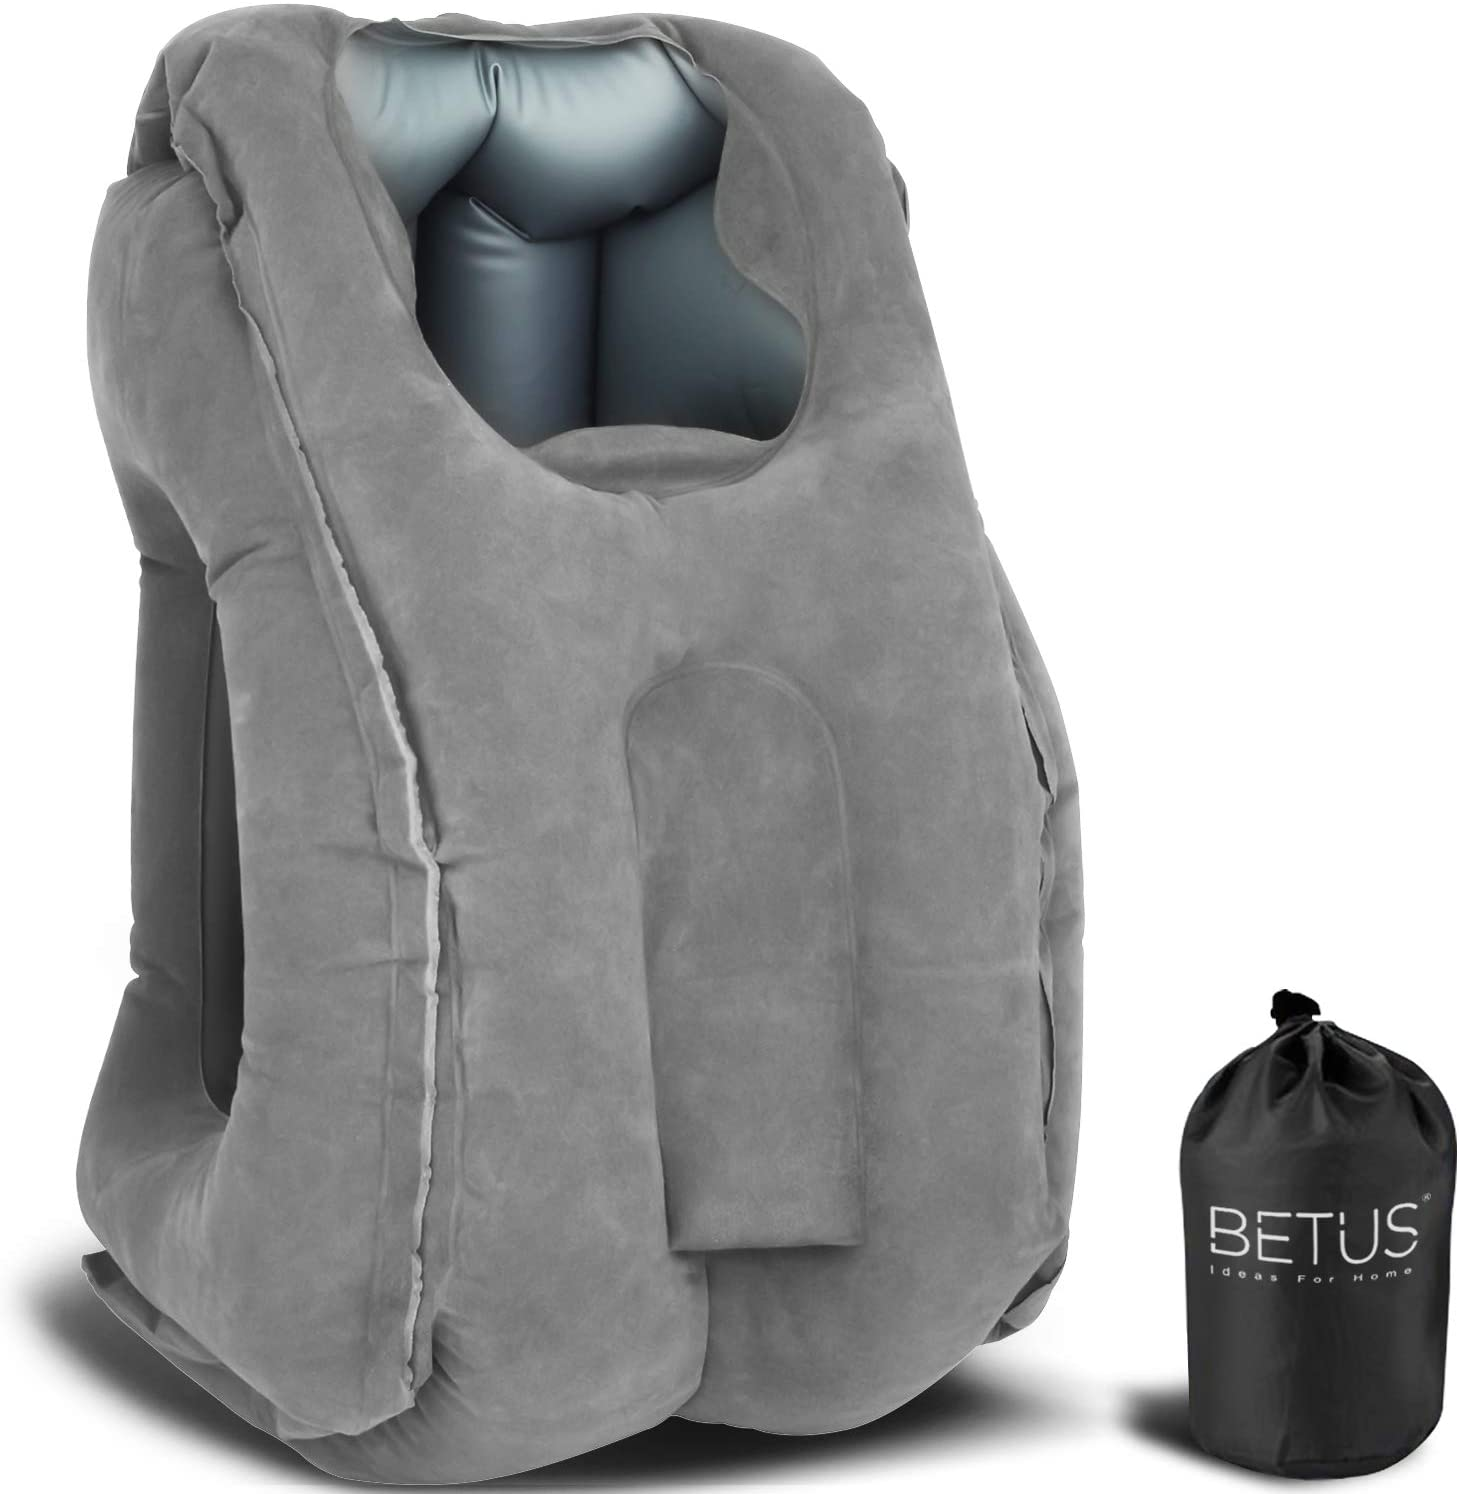 Betus Dreamer Comfort Inflatable Limited Finally popular brand time sale Travel Pillow - Airplane for Er